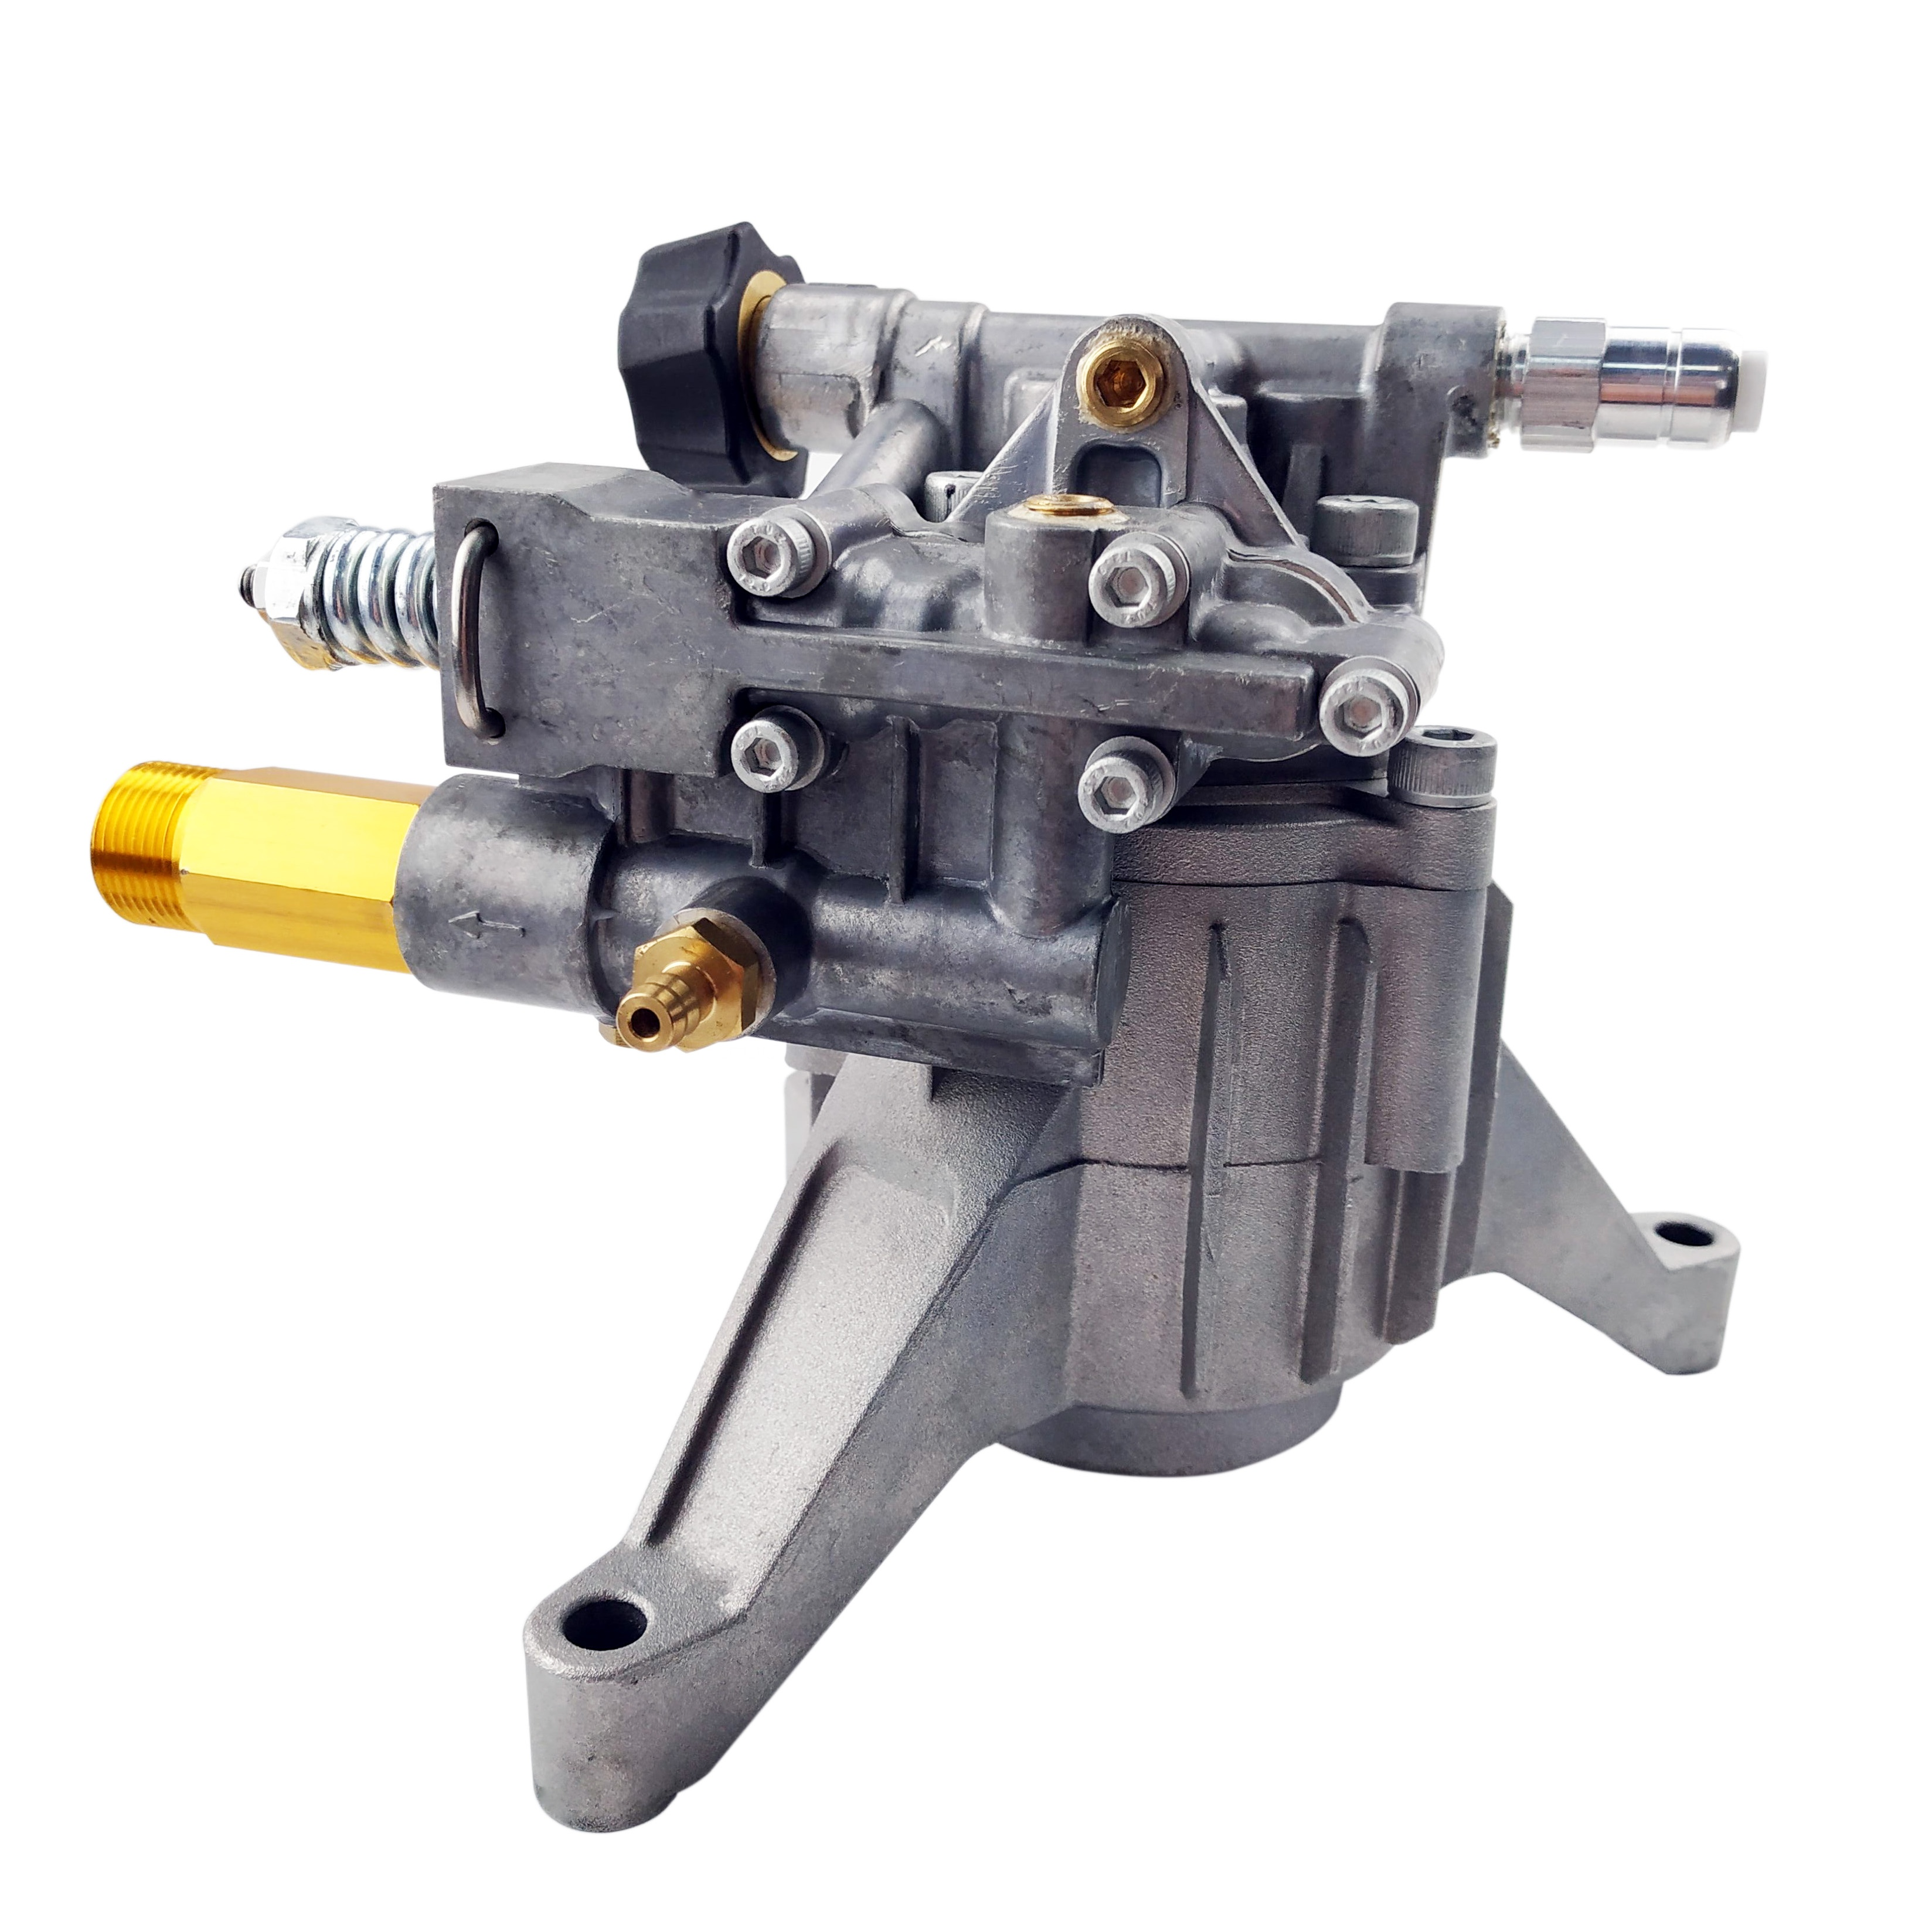 Cleaner 2800 PSI 2.5 GPM <strong>Axial</strong> Radial Drive Aluminium <strong>Pump</strong> 7/8&quot; Shaft Brass Head Power <strong>Pump</strong> for High Pressure Washer